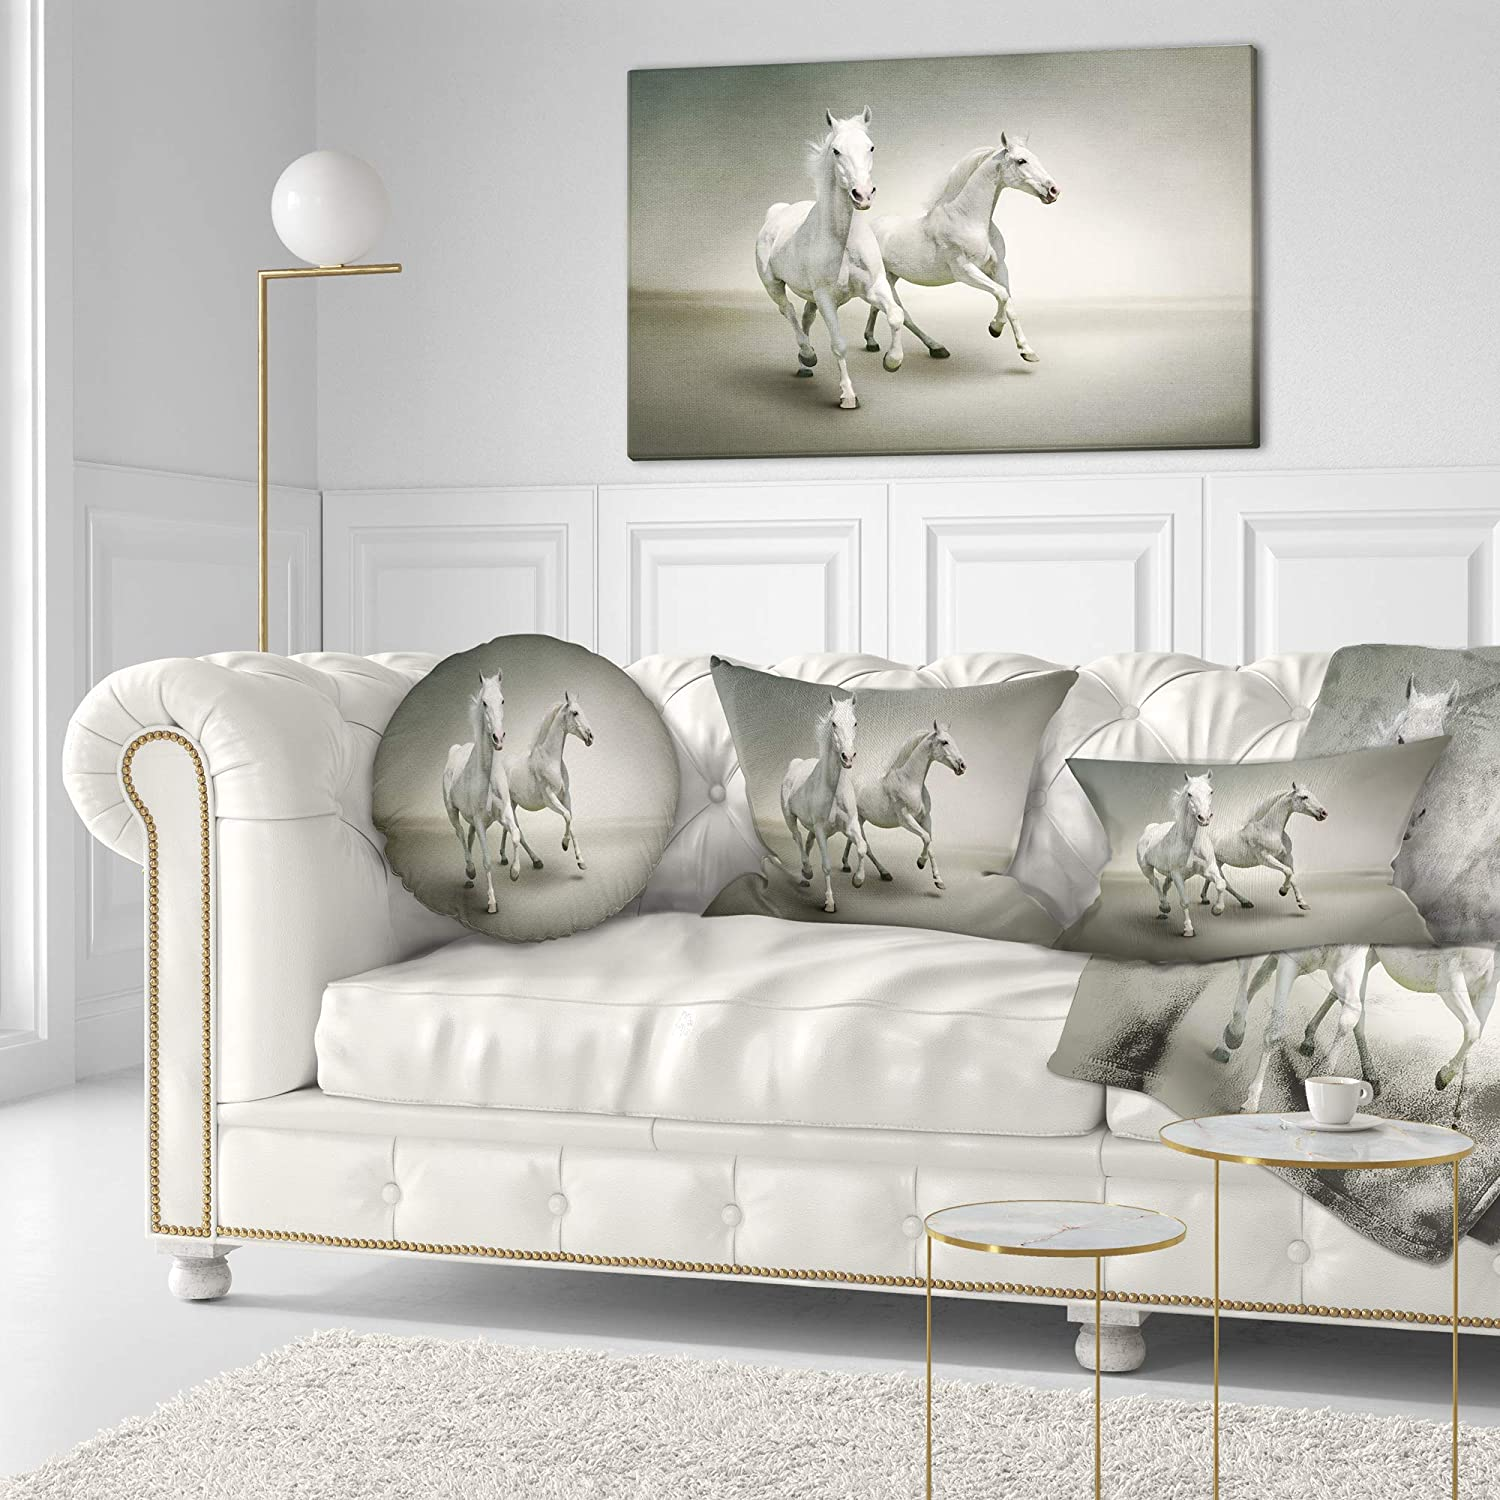 Insert Printed On Both Side Sofa Throw Pillow 20 Designart CU13476-20-20-C Fast Moving White Horses Animal Round Cushion Cover for Living Room